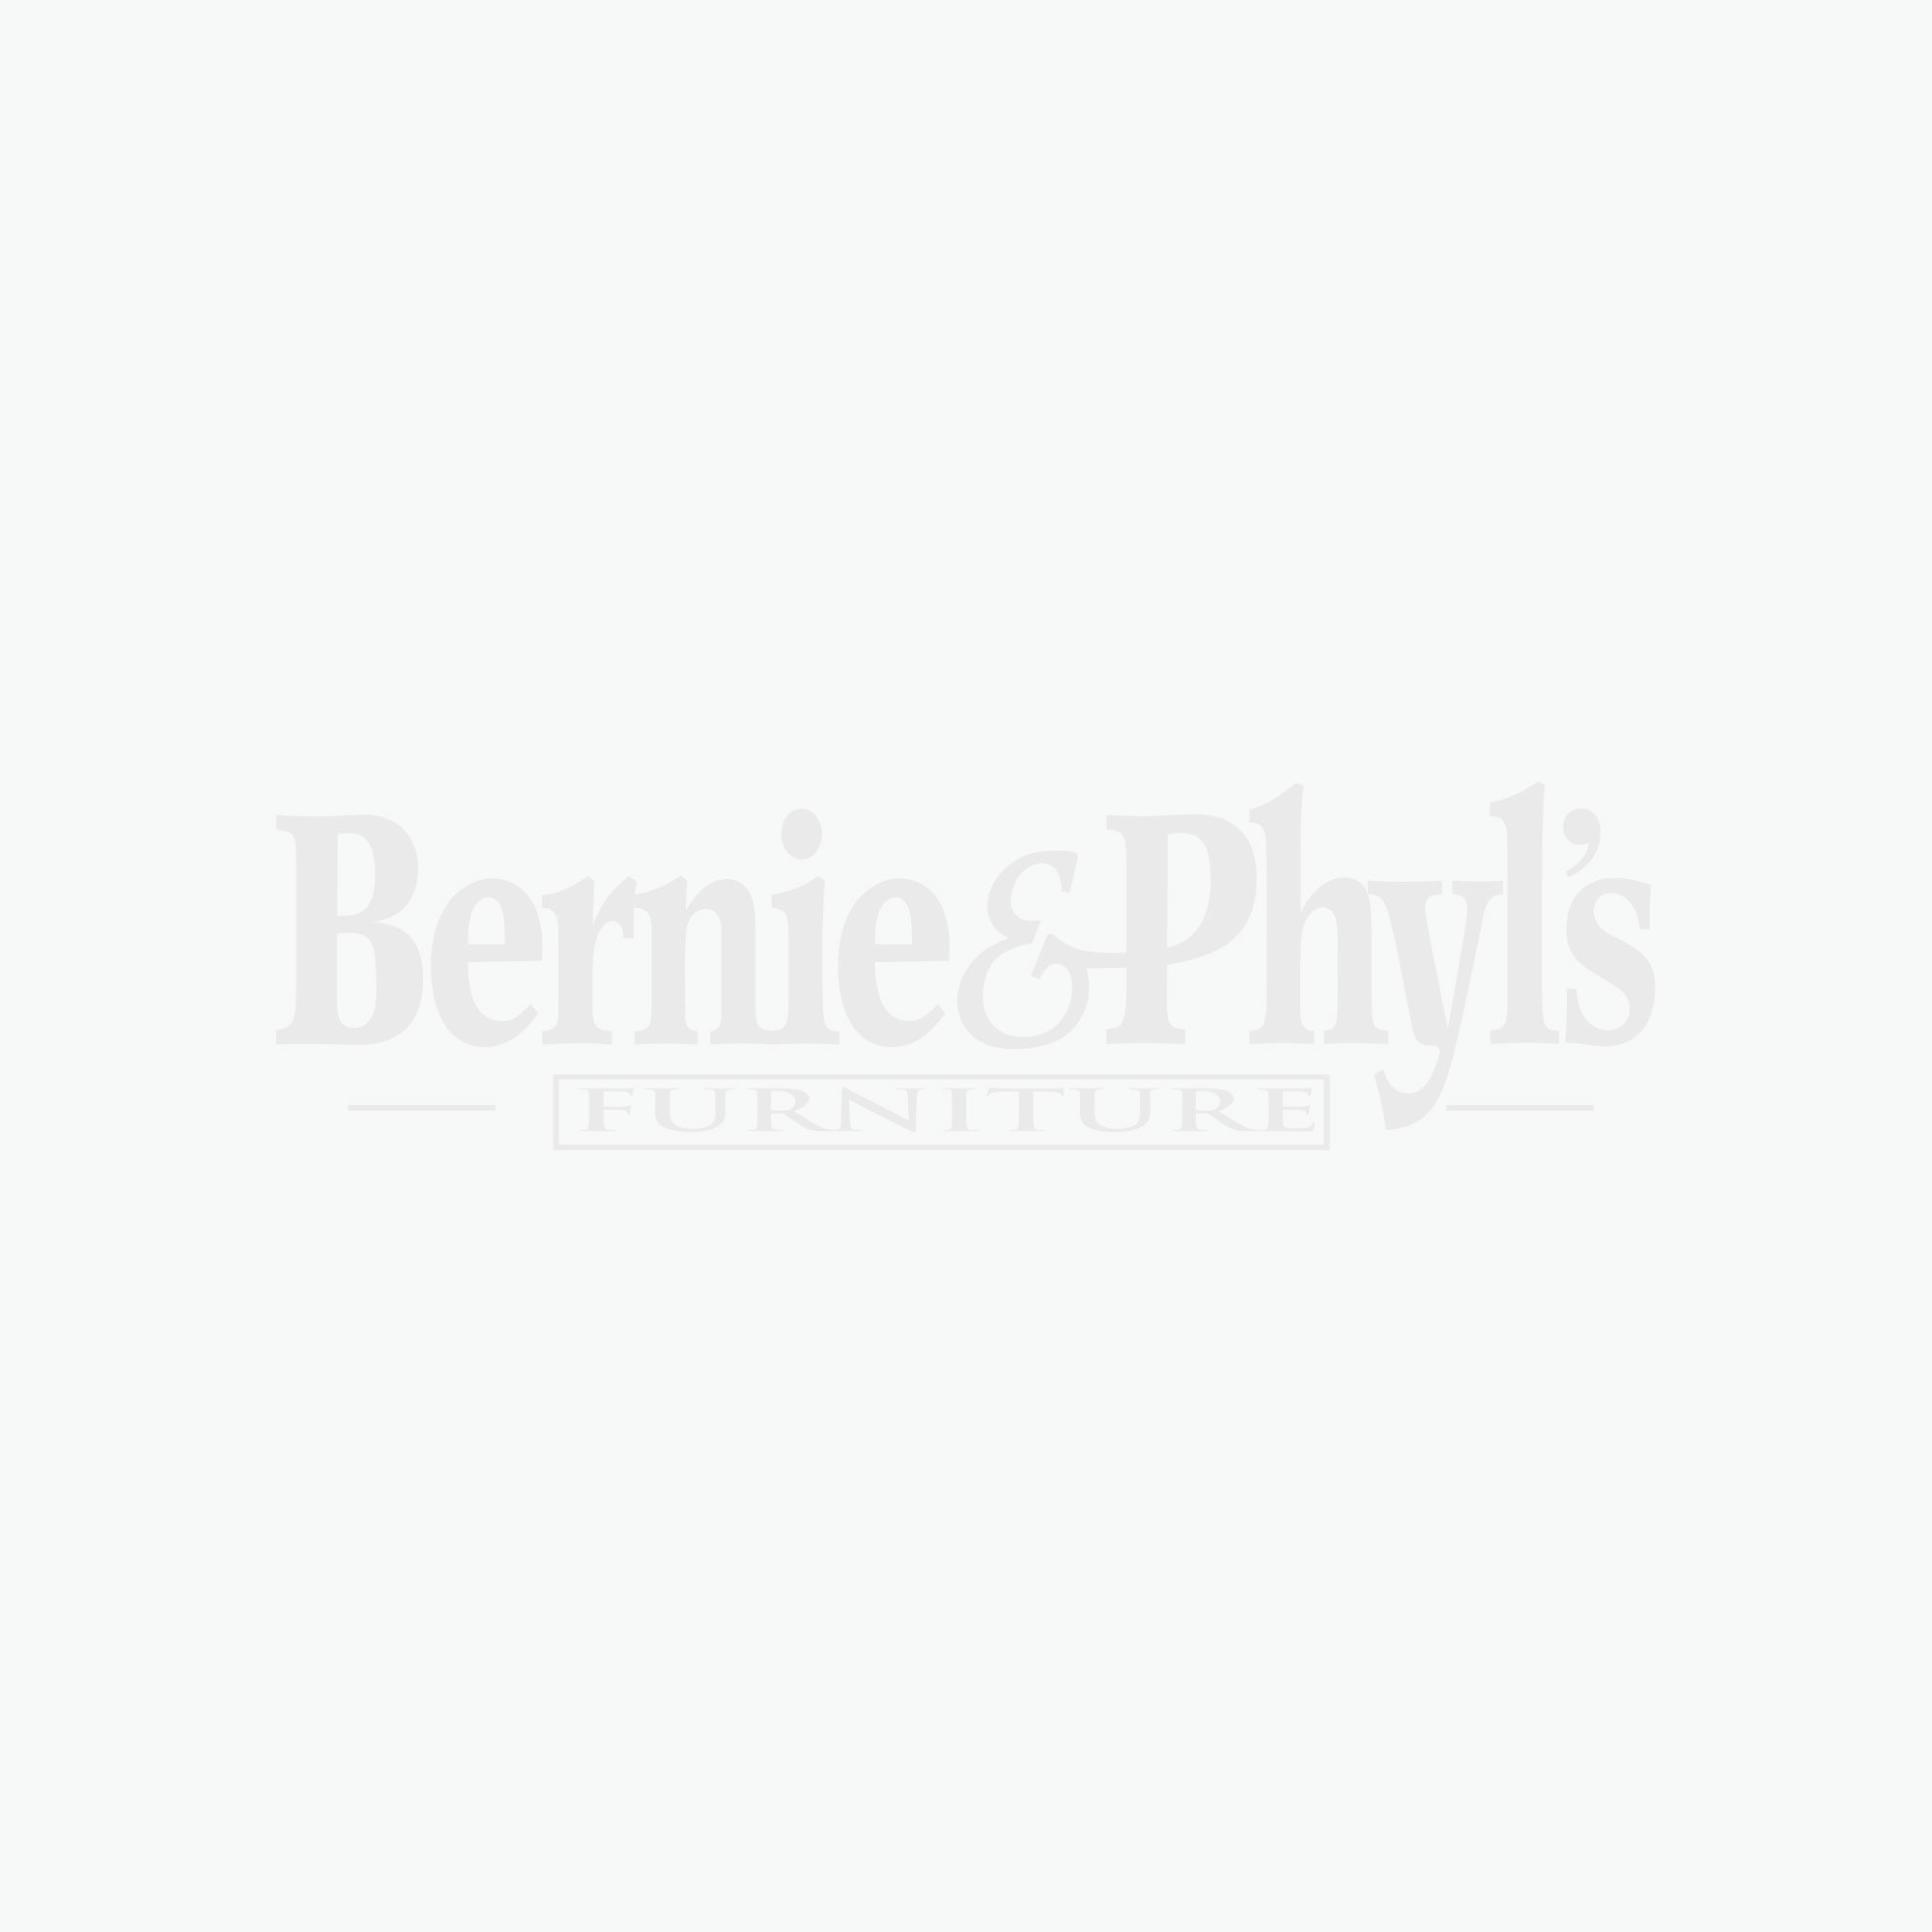 Whitesburg Dinette Table